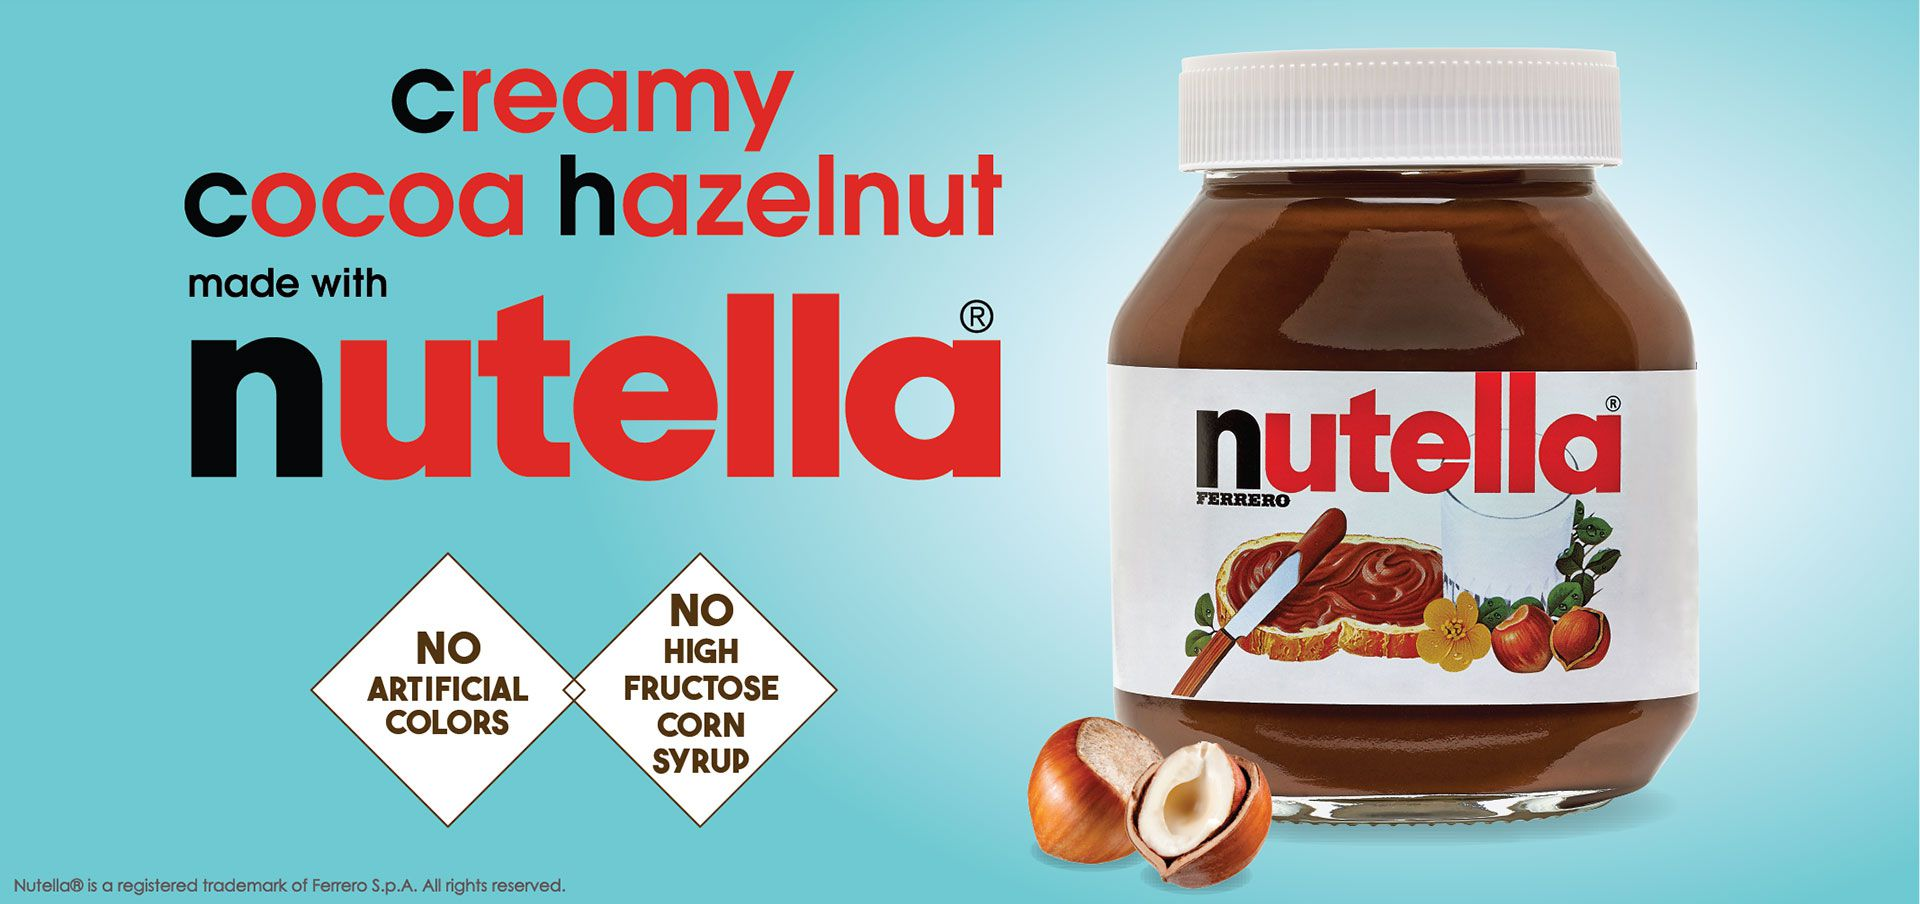 creamy cocoa hazelnut made with nutella® label image